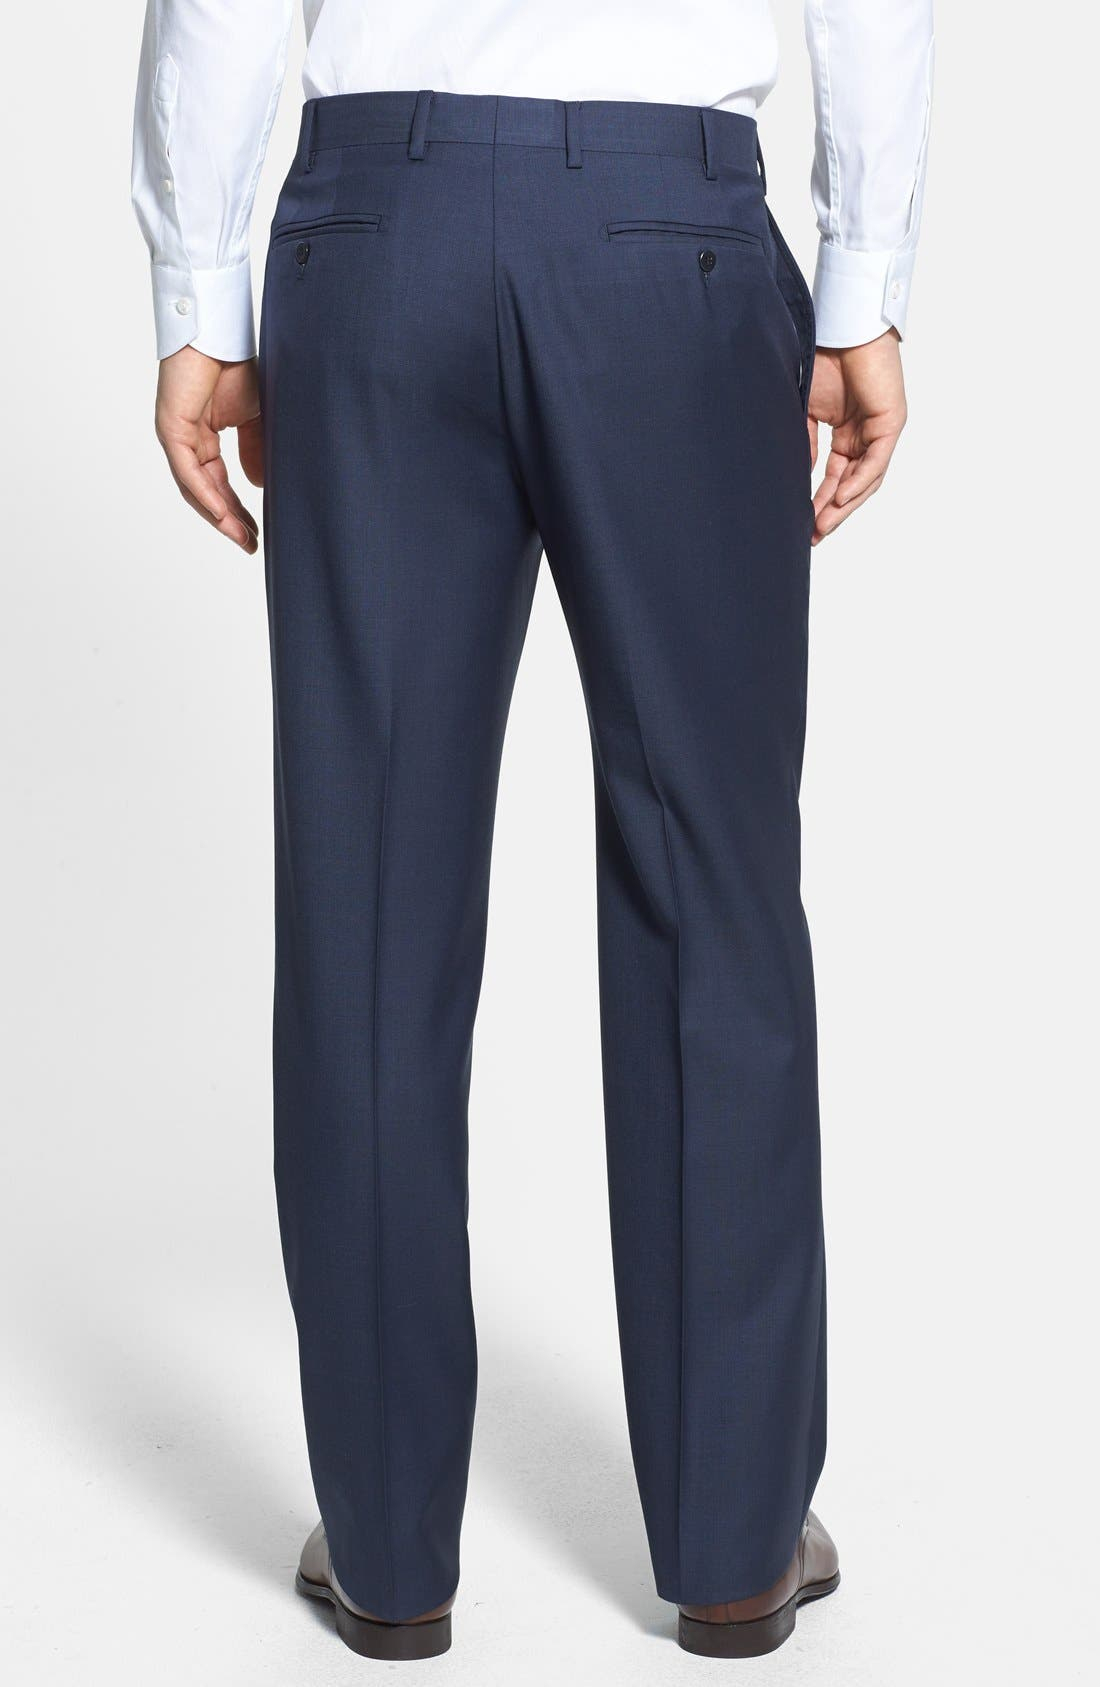 'Devon' Flat Front Wool Trousers,                             Alternate thumbnail 15, color,